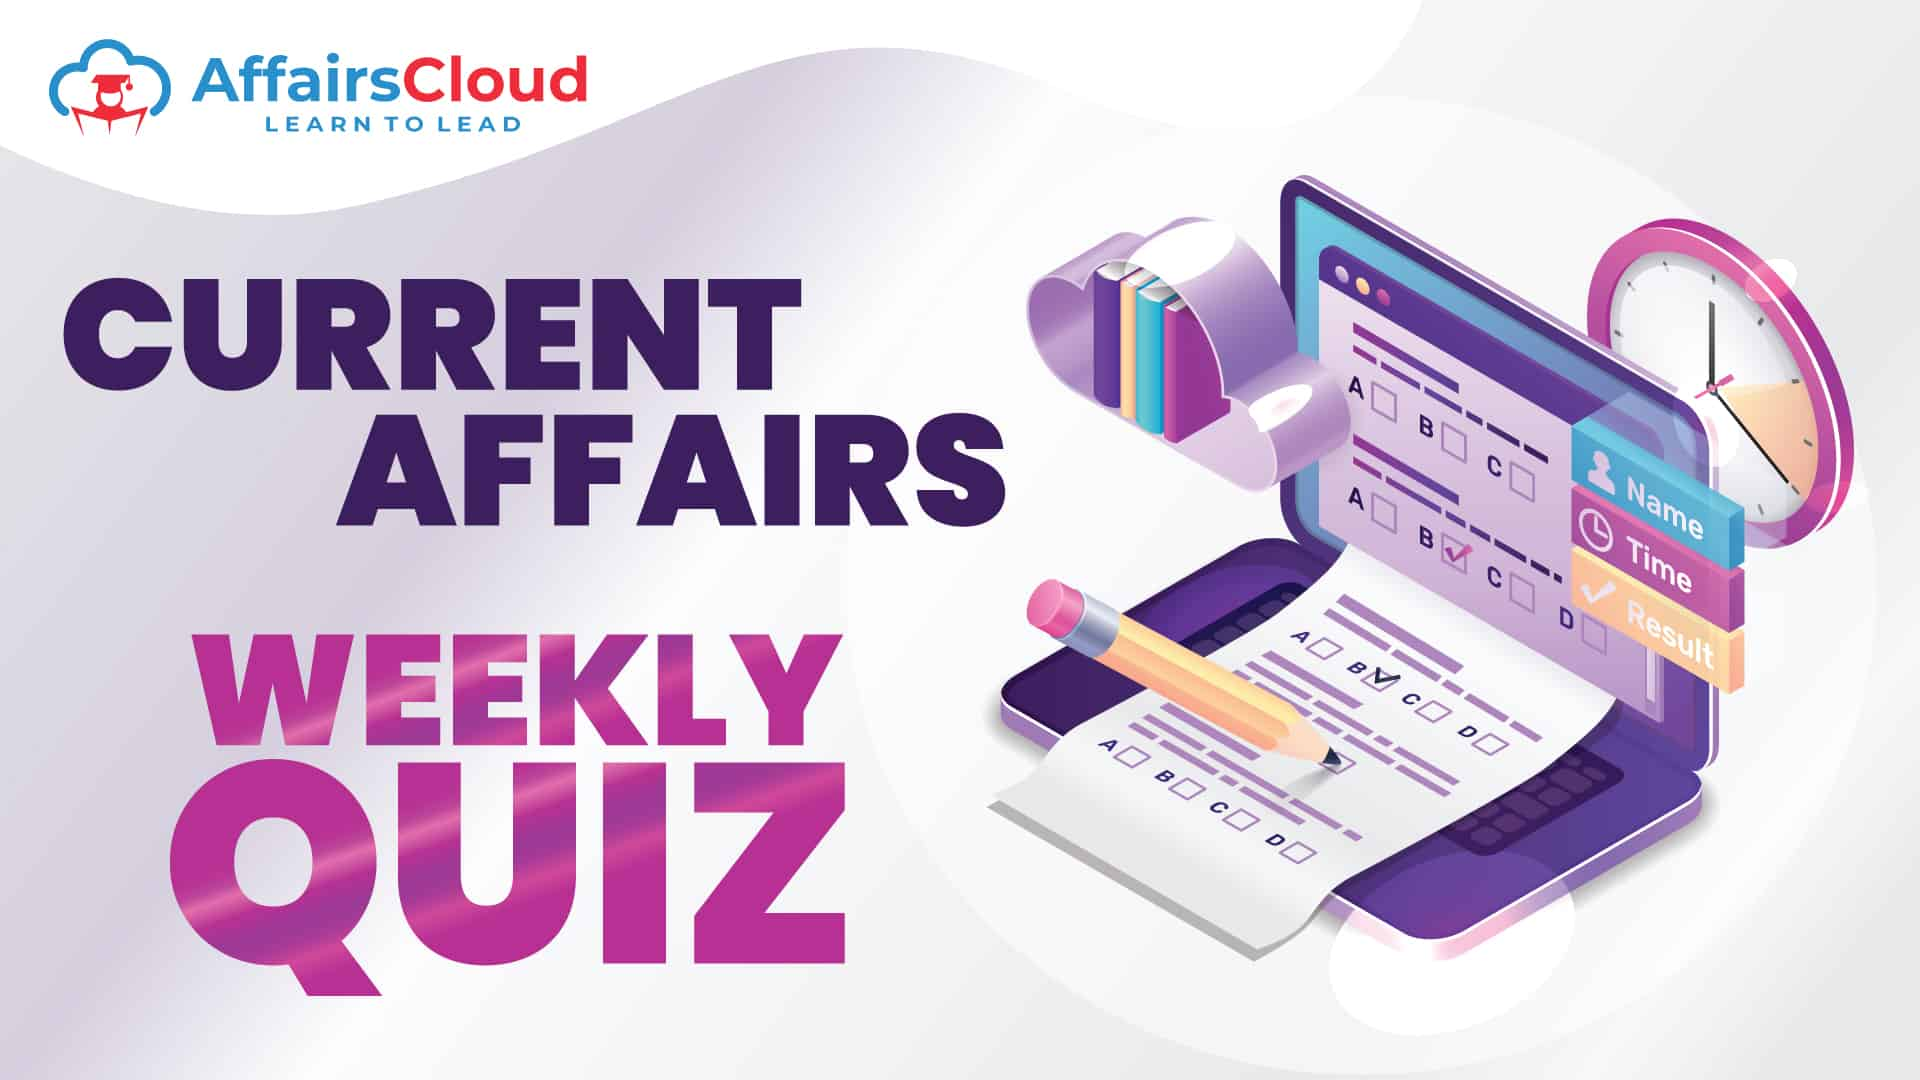 Current Affairs Weekly Quiz Landing age image